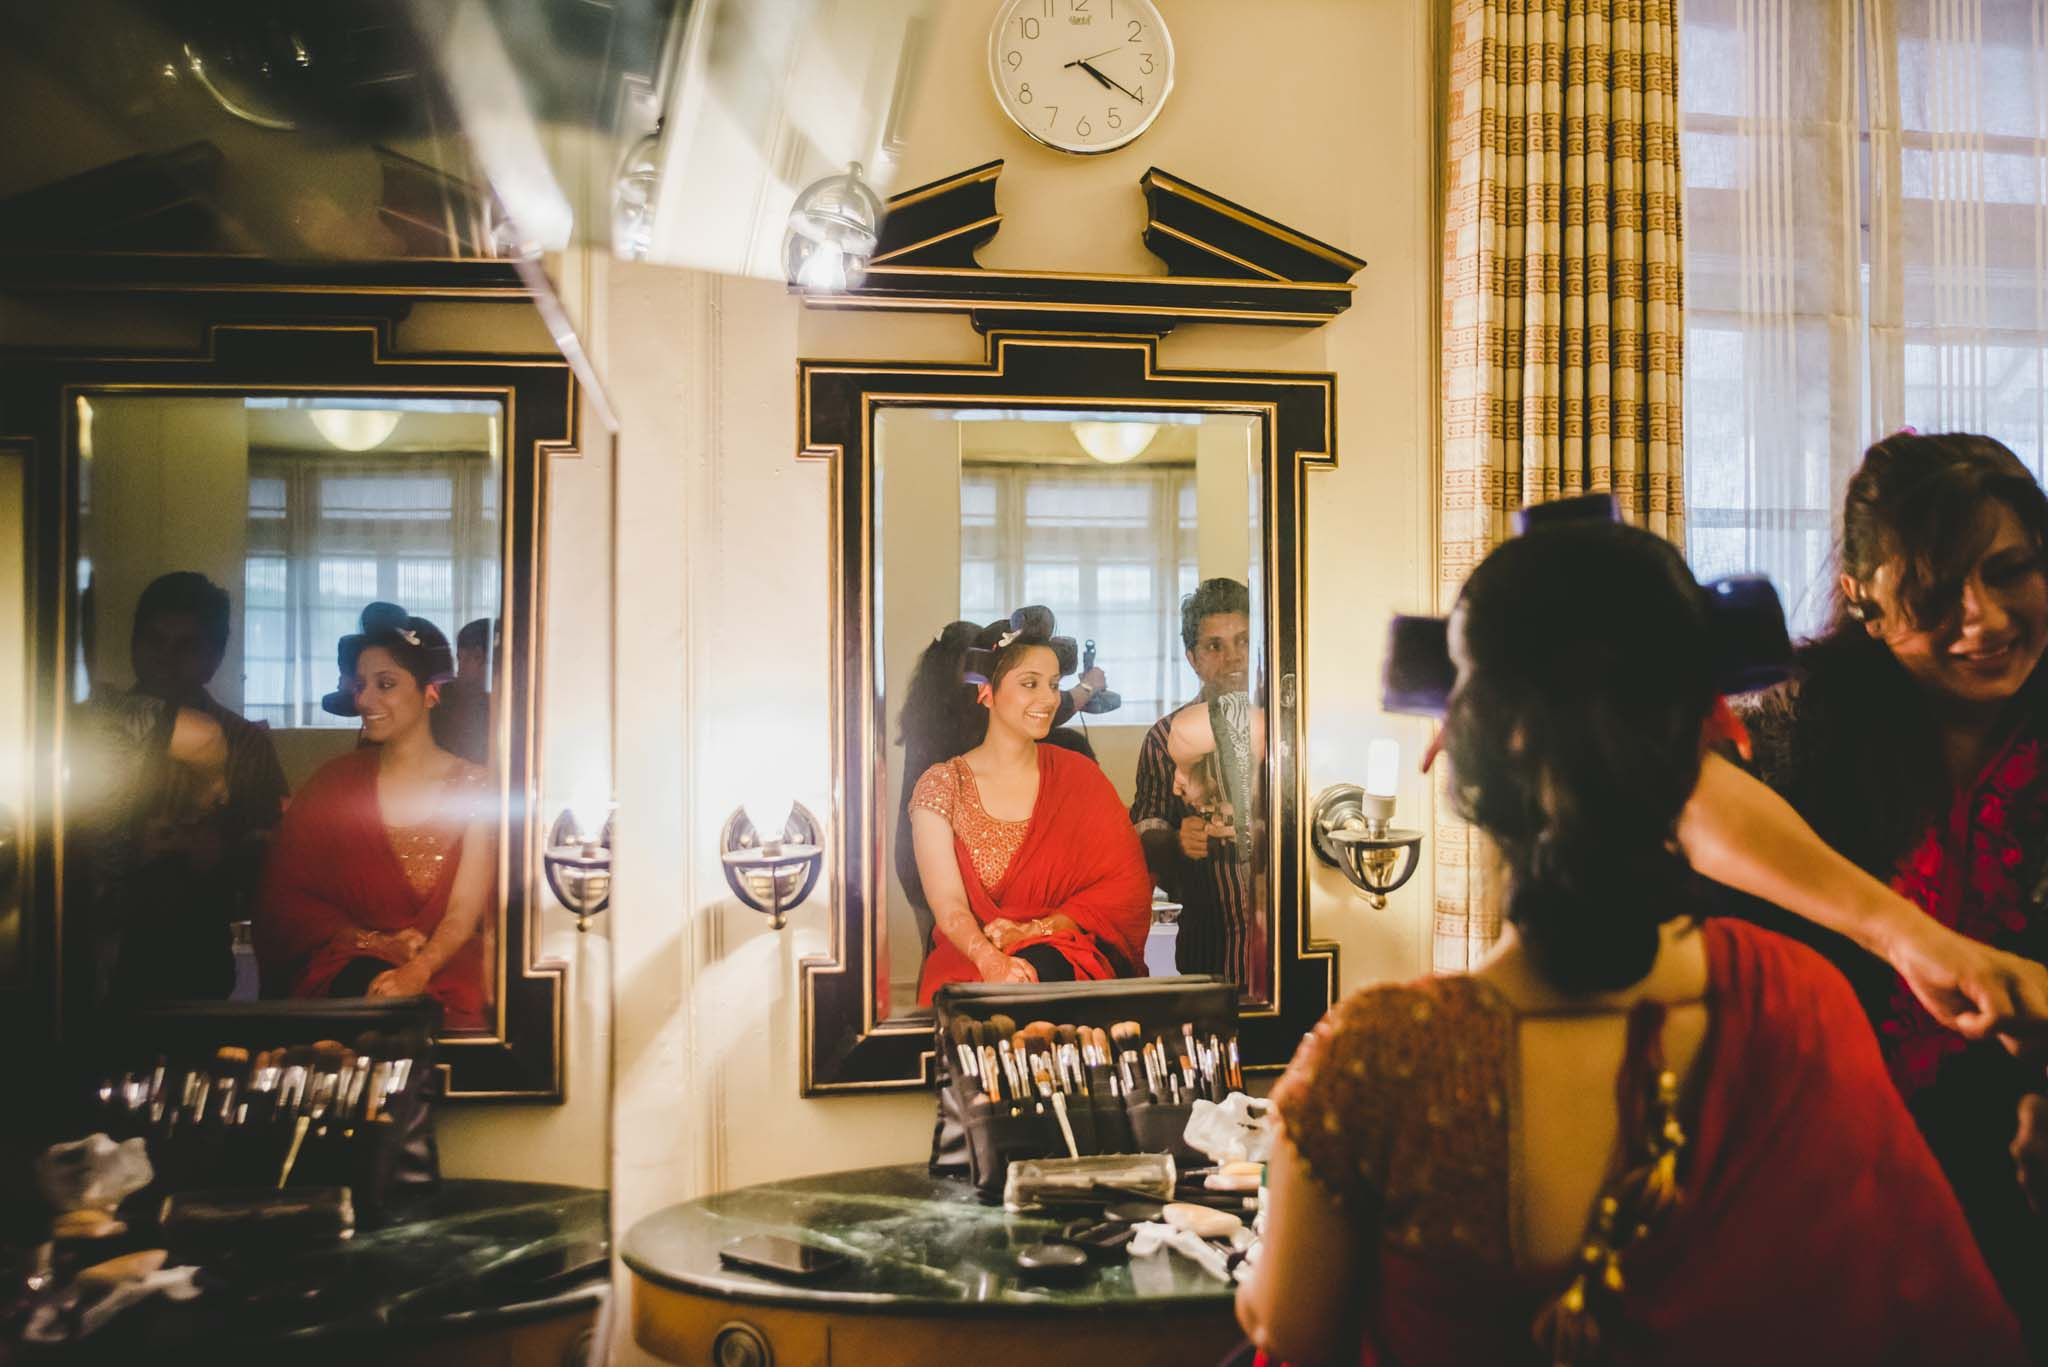 Make-up-getting-ready-brides-photography-3